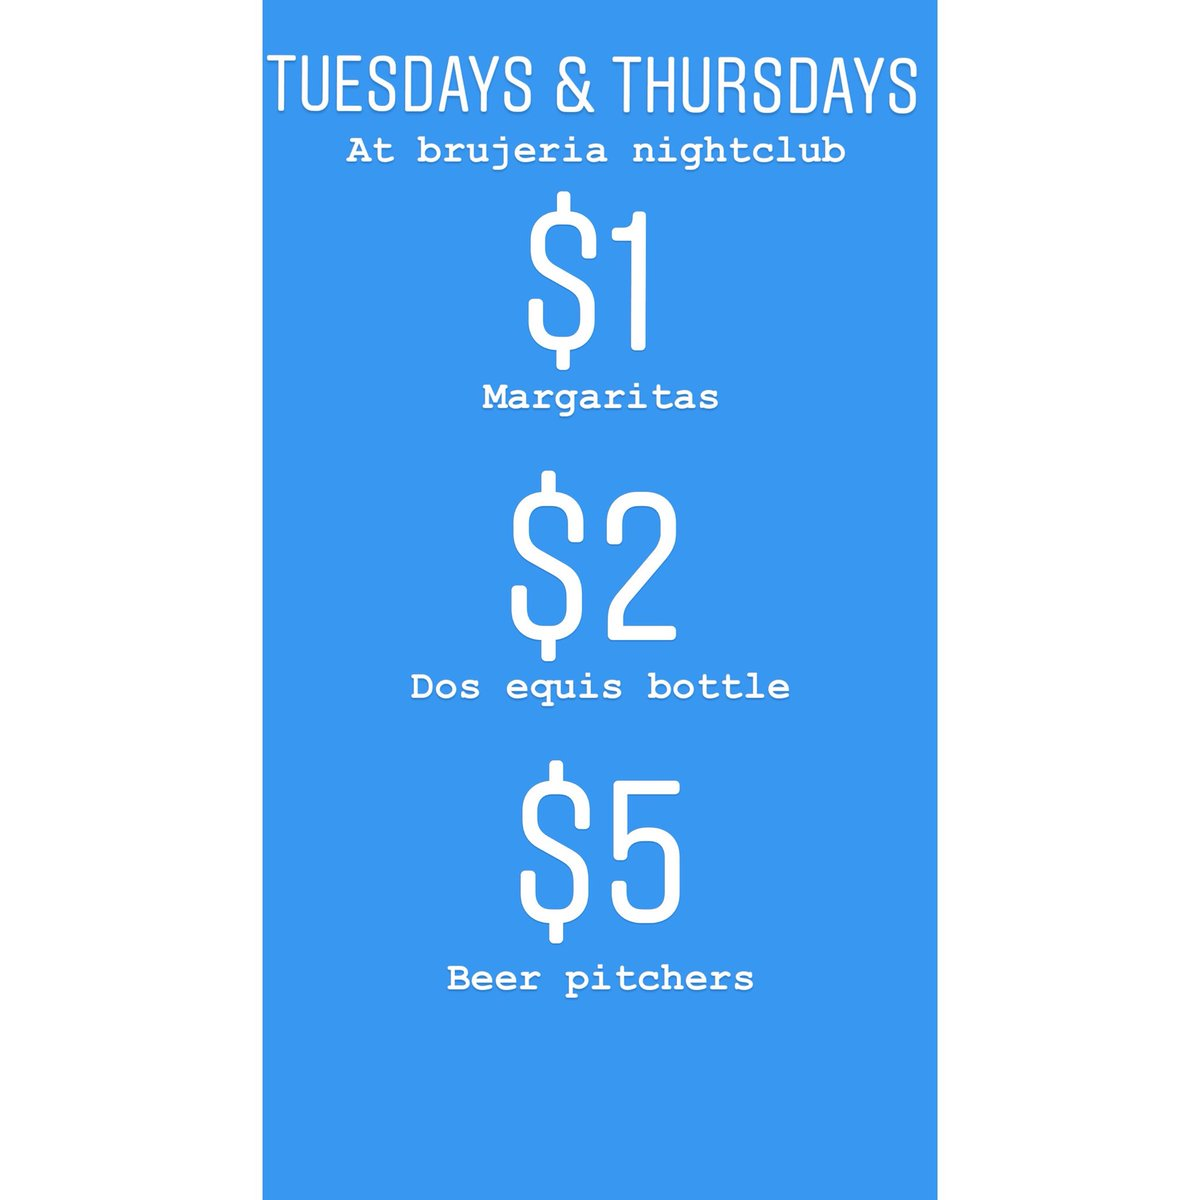 Tuesday and Thursday specials, #RT this , #BrujeriaDT THE PARTY PLACE TO BE. https://t.co/eEpHVGBQJ8